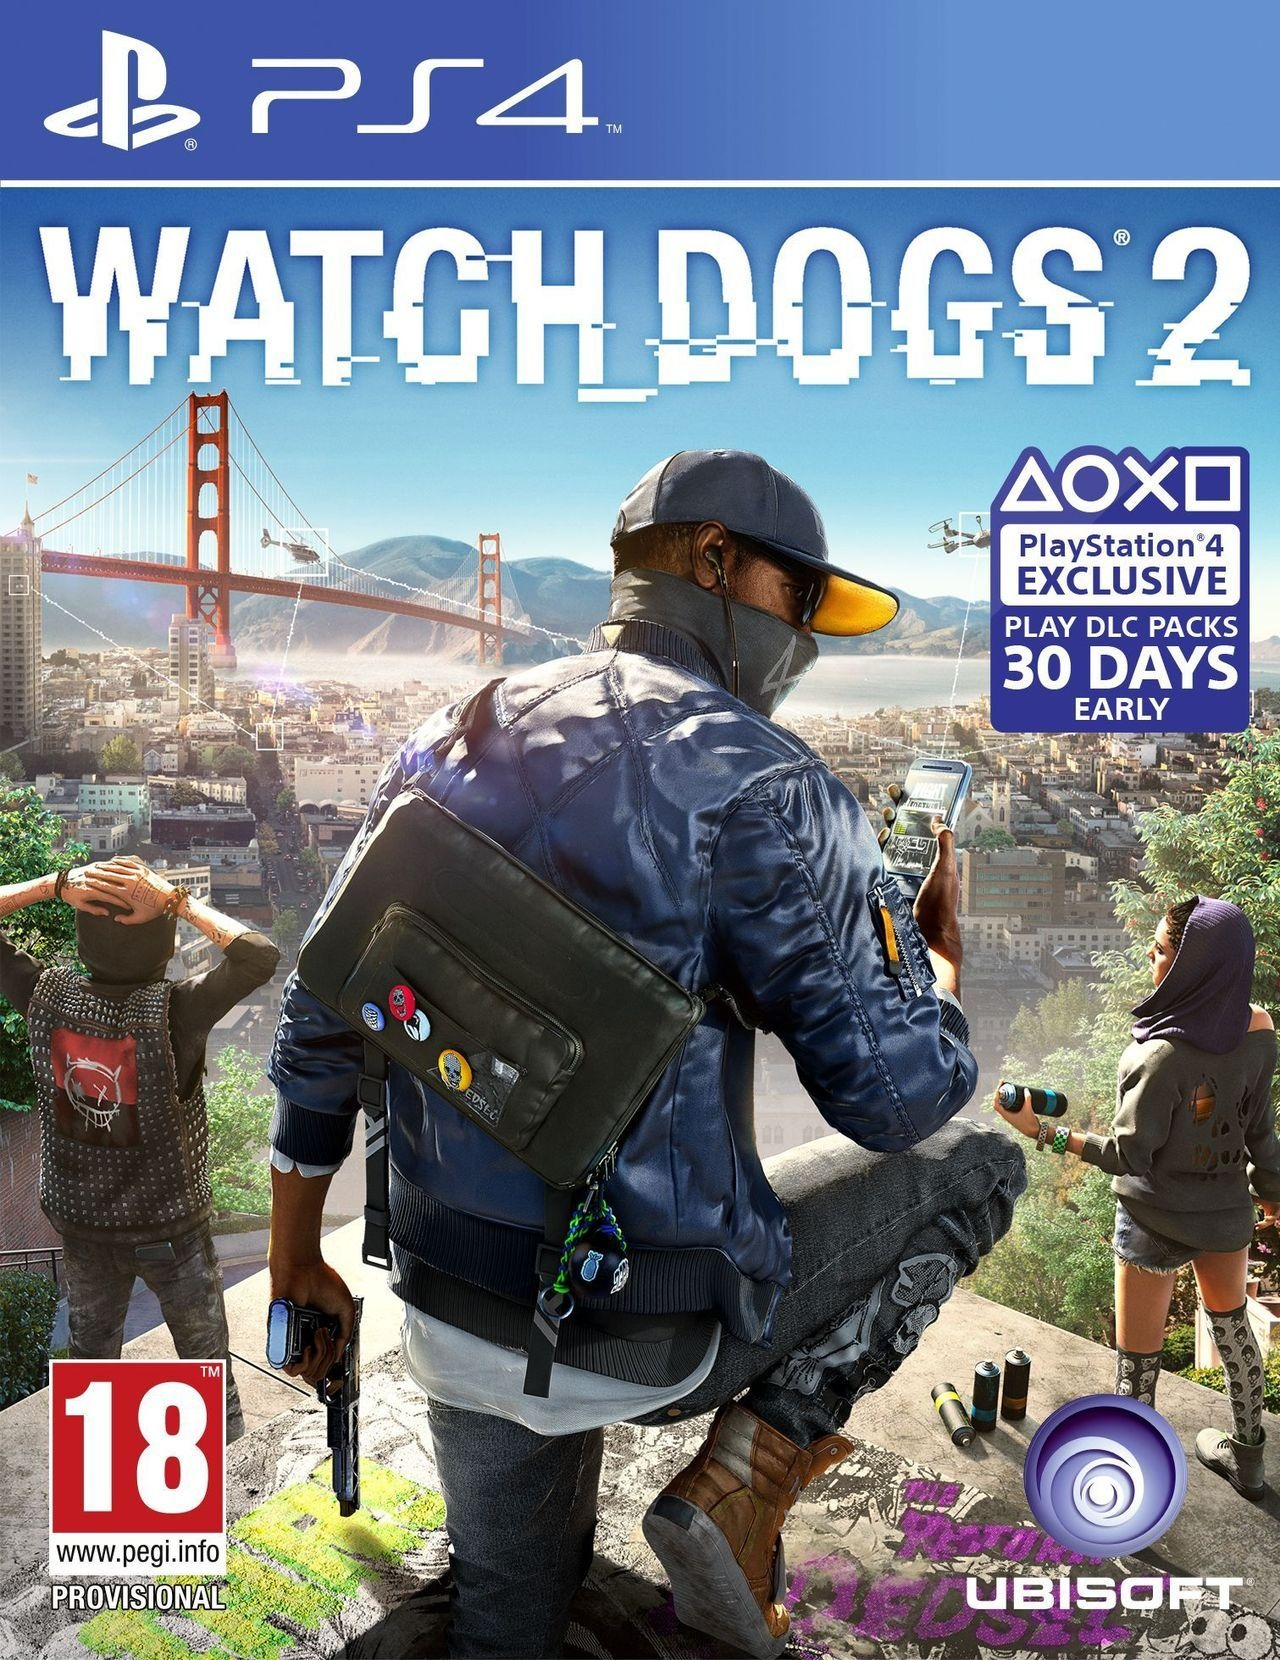 WATCH DOGS 2 (...